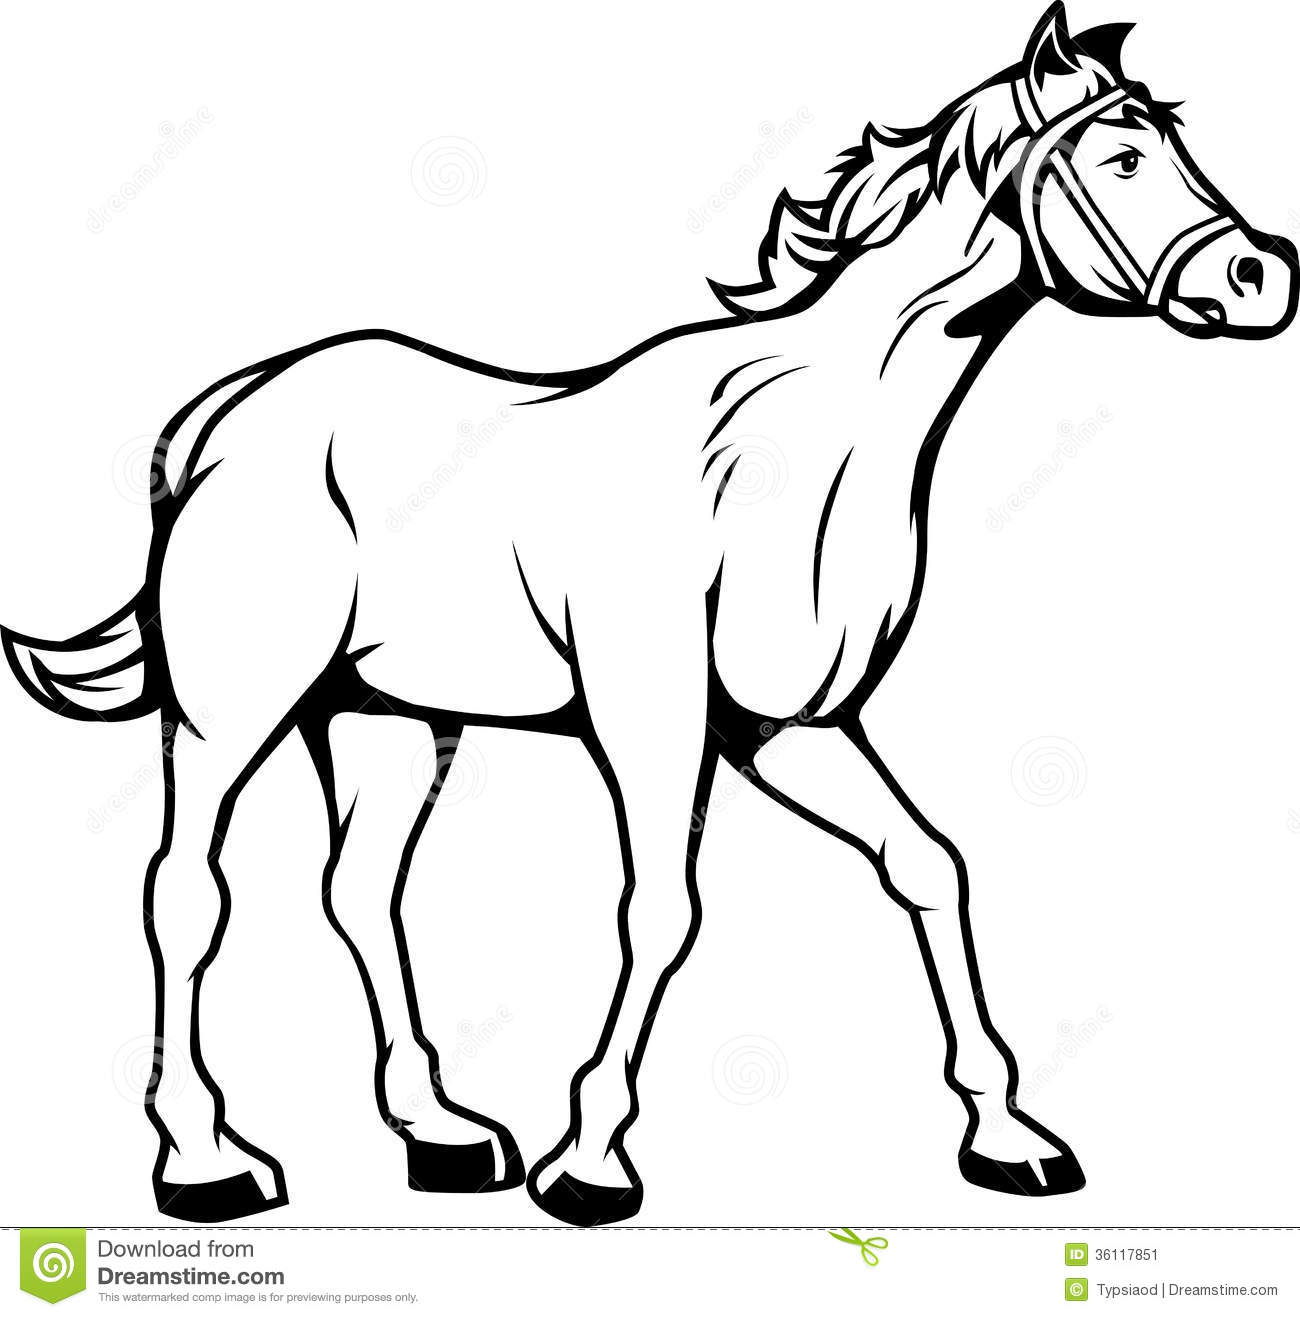 Black and white horse clipart 1 » Clipart Station.